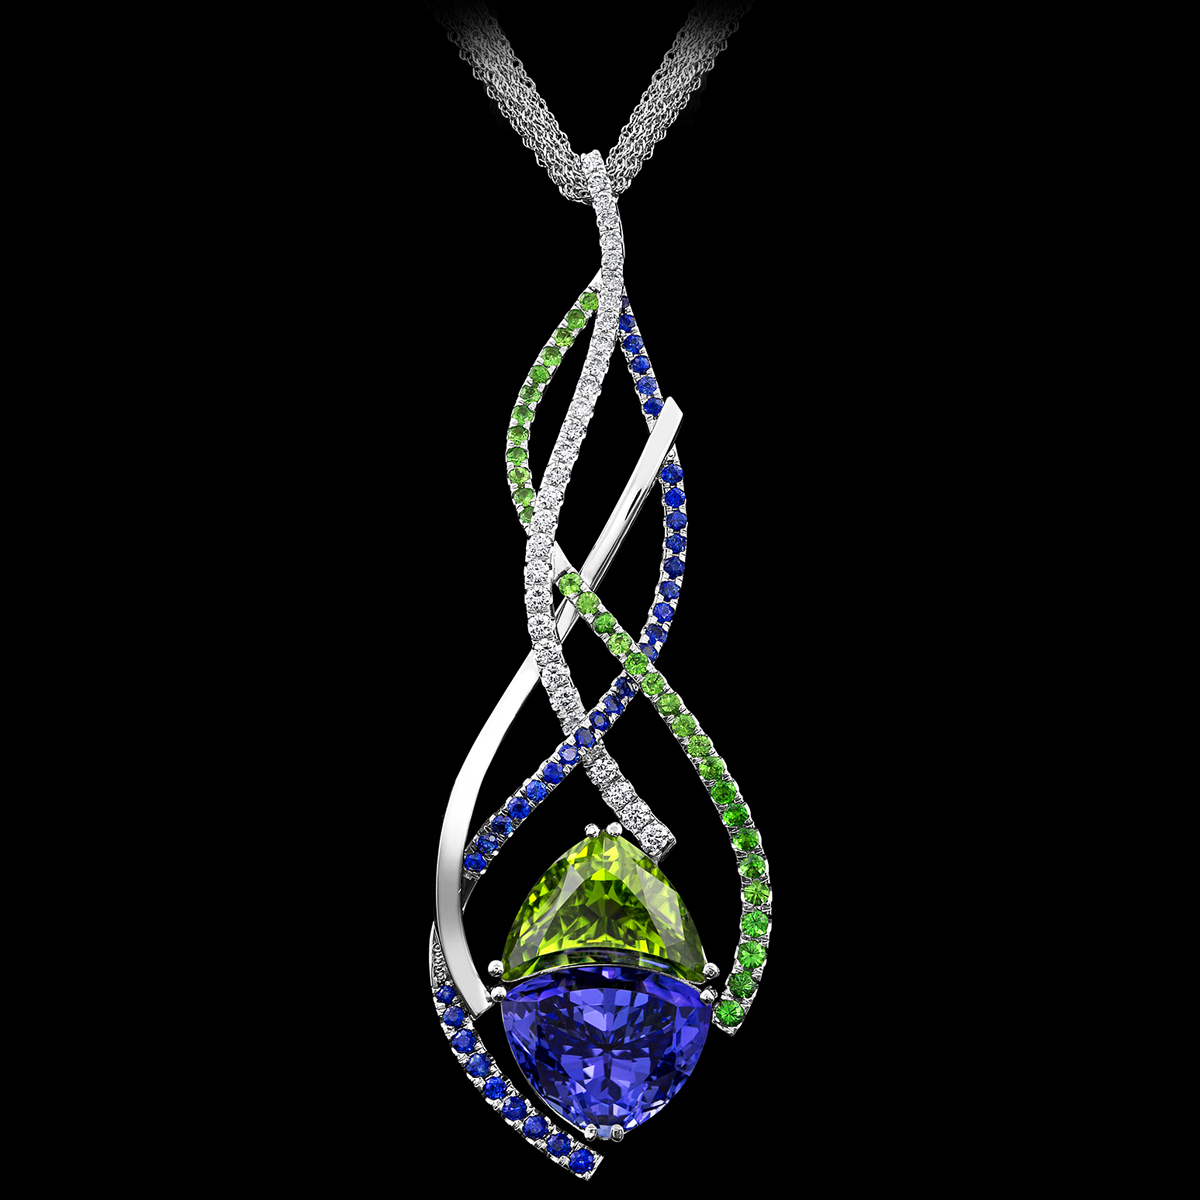 Stephen Avery Gemstone Jewelry Majestic Tanzanite and Peridot Pendant